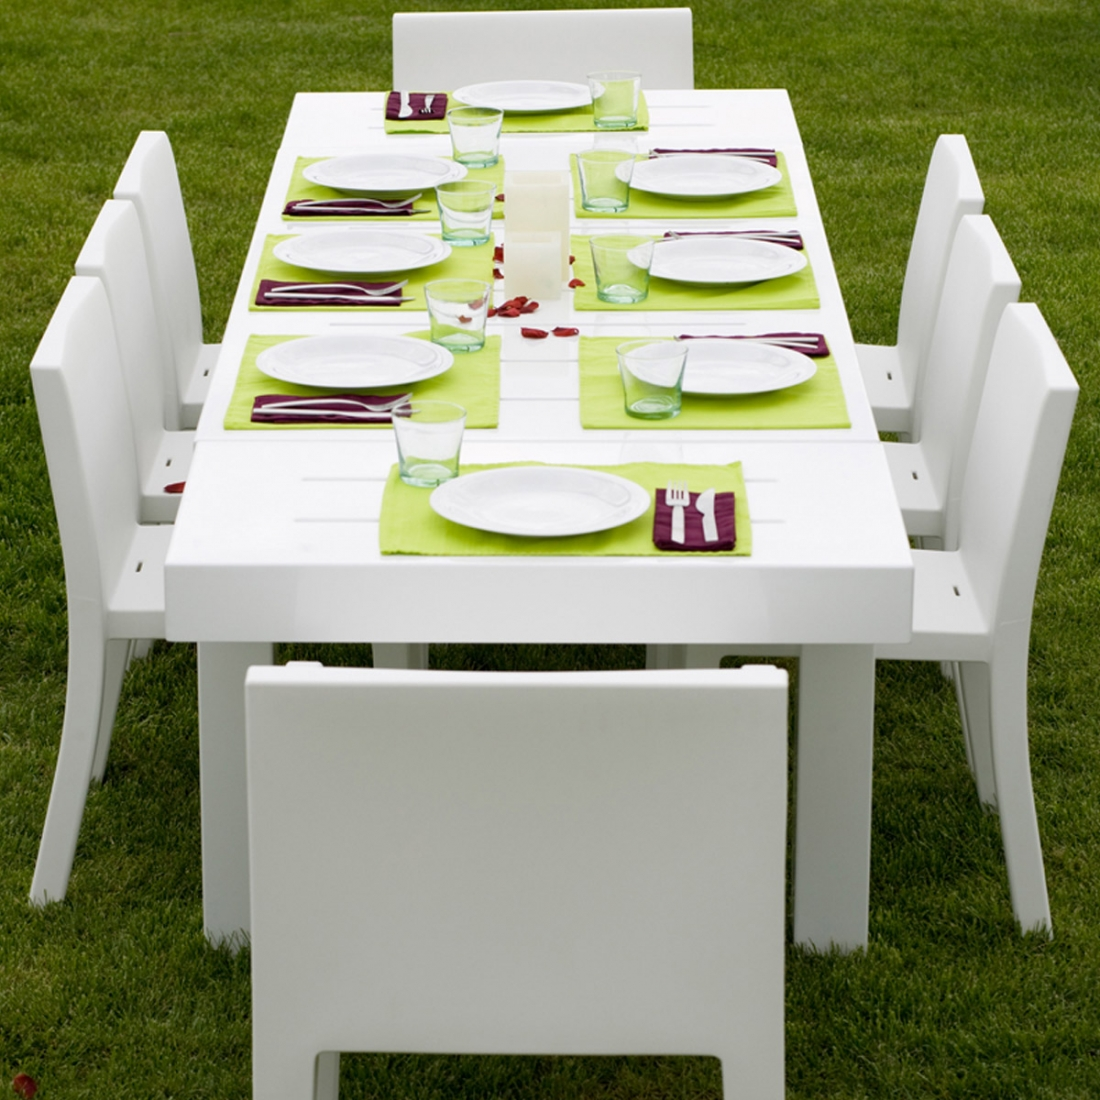 table de jardin design 10 personnes jut par vondom. Black Bedroom Furniture Sets. Home Design Ideas